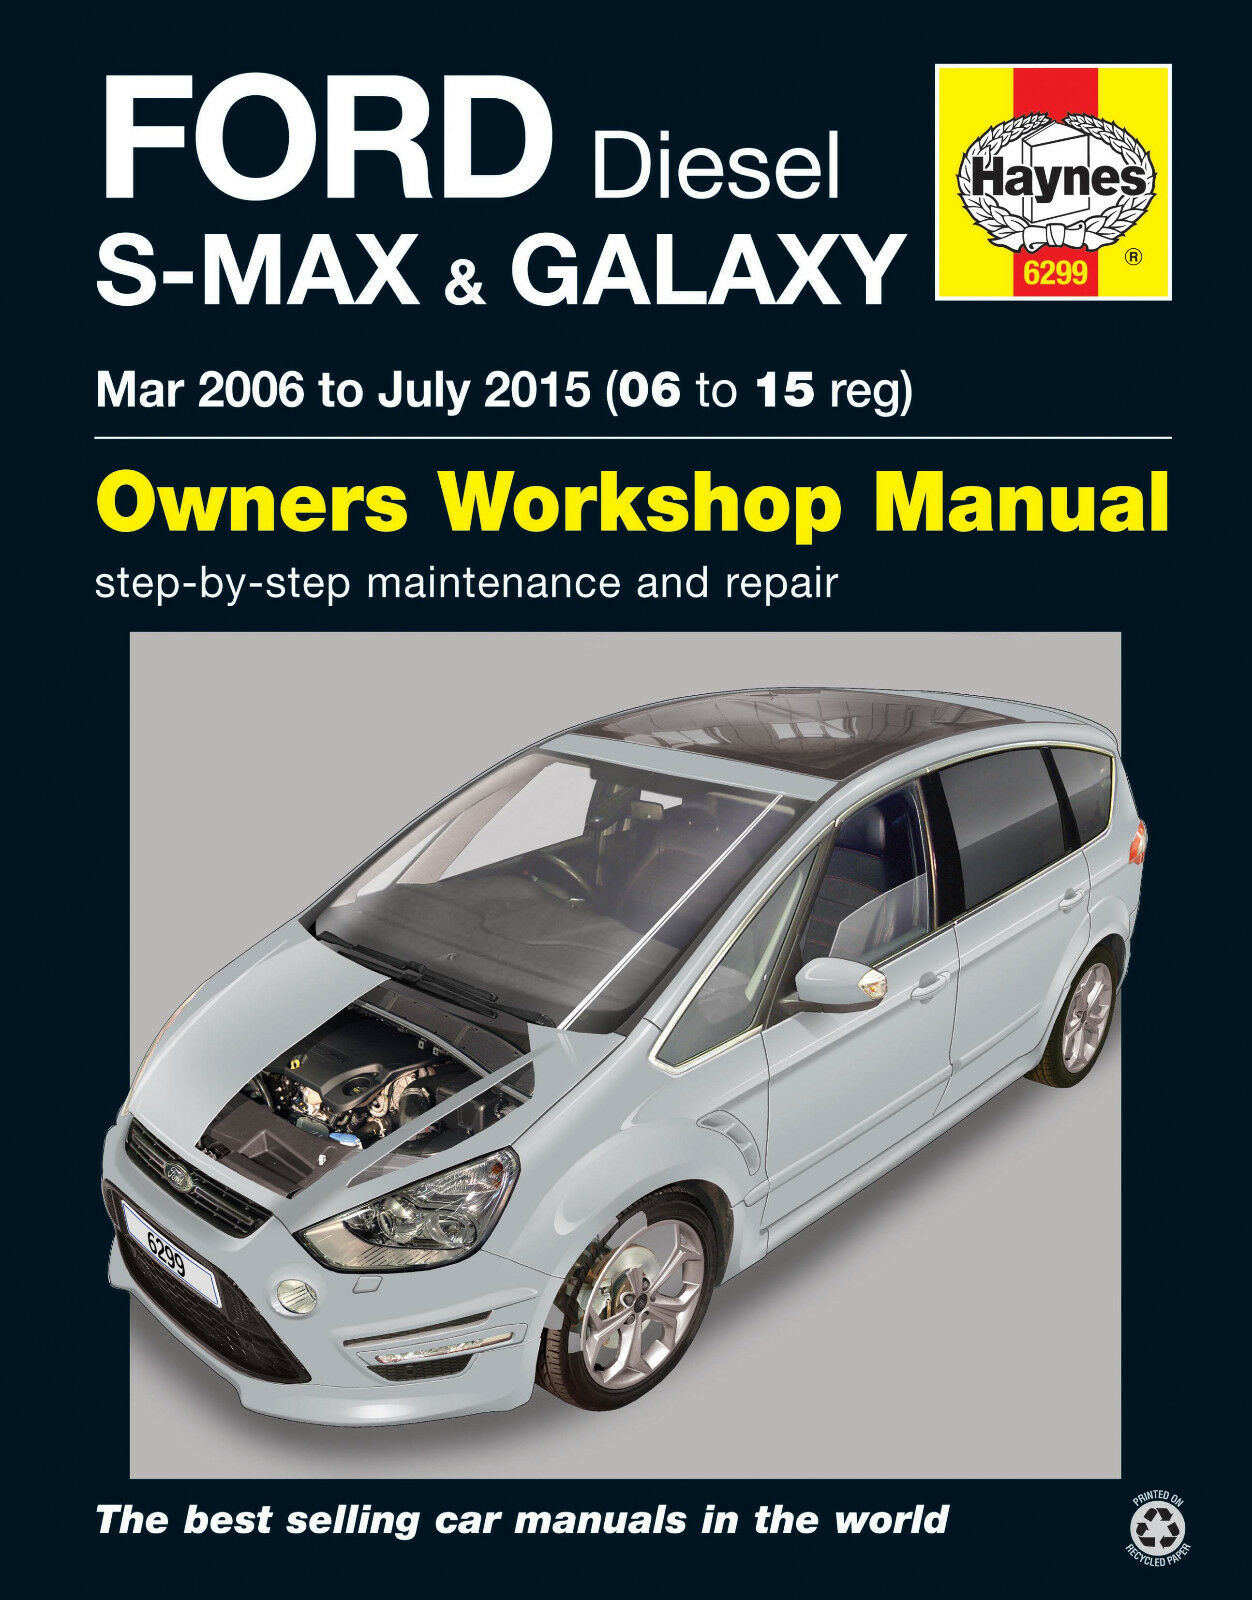 HAYNES 6299 SERVICE REPAIR MANUAL FORD S-MAX GALAXY (MAR 06 - JULY 15) DIESEL